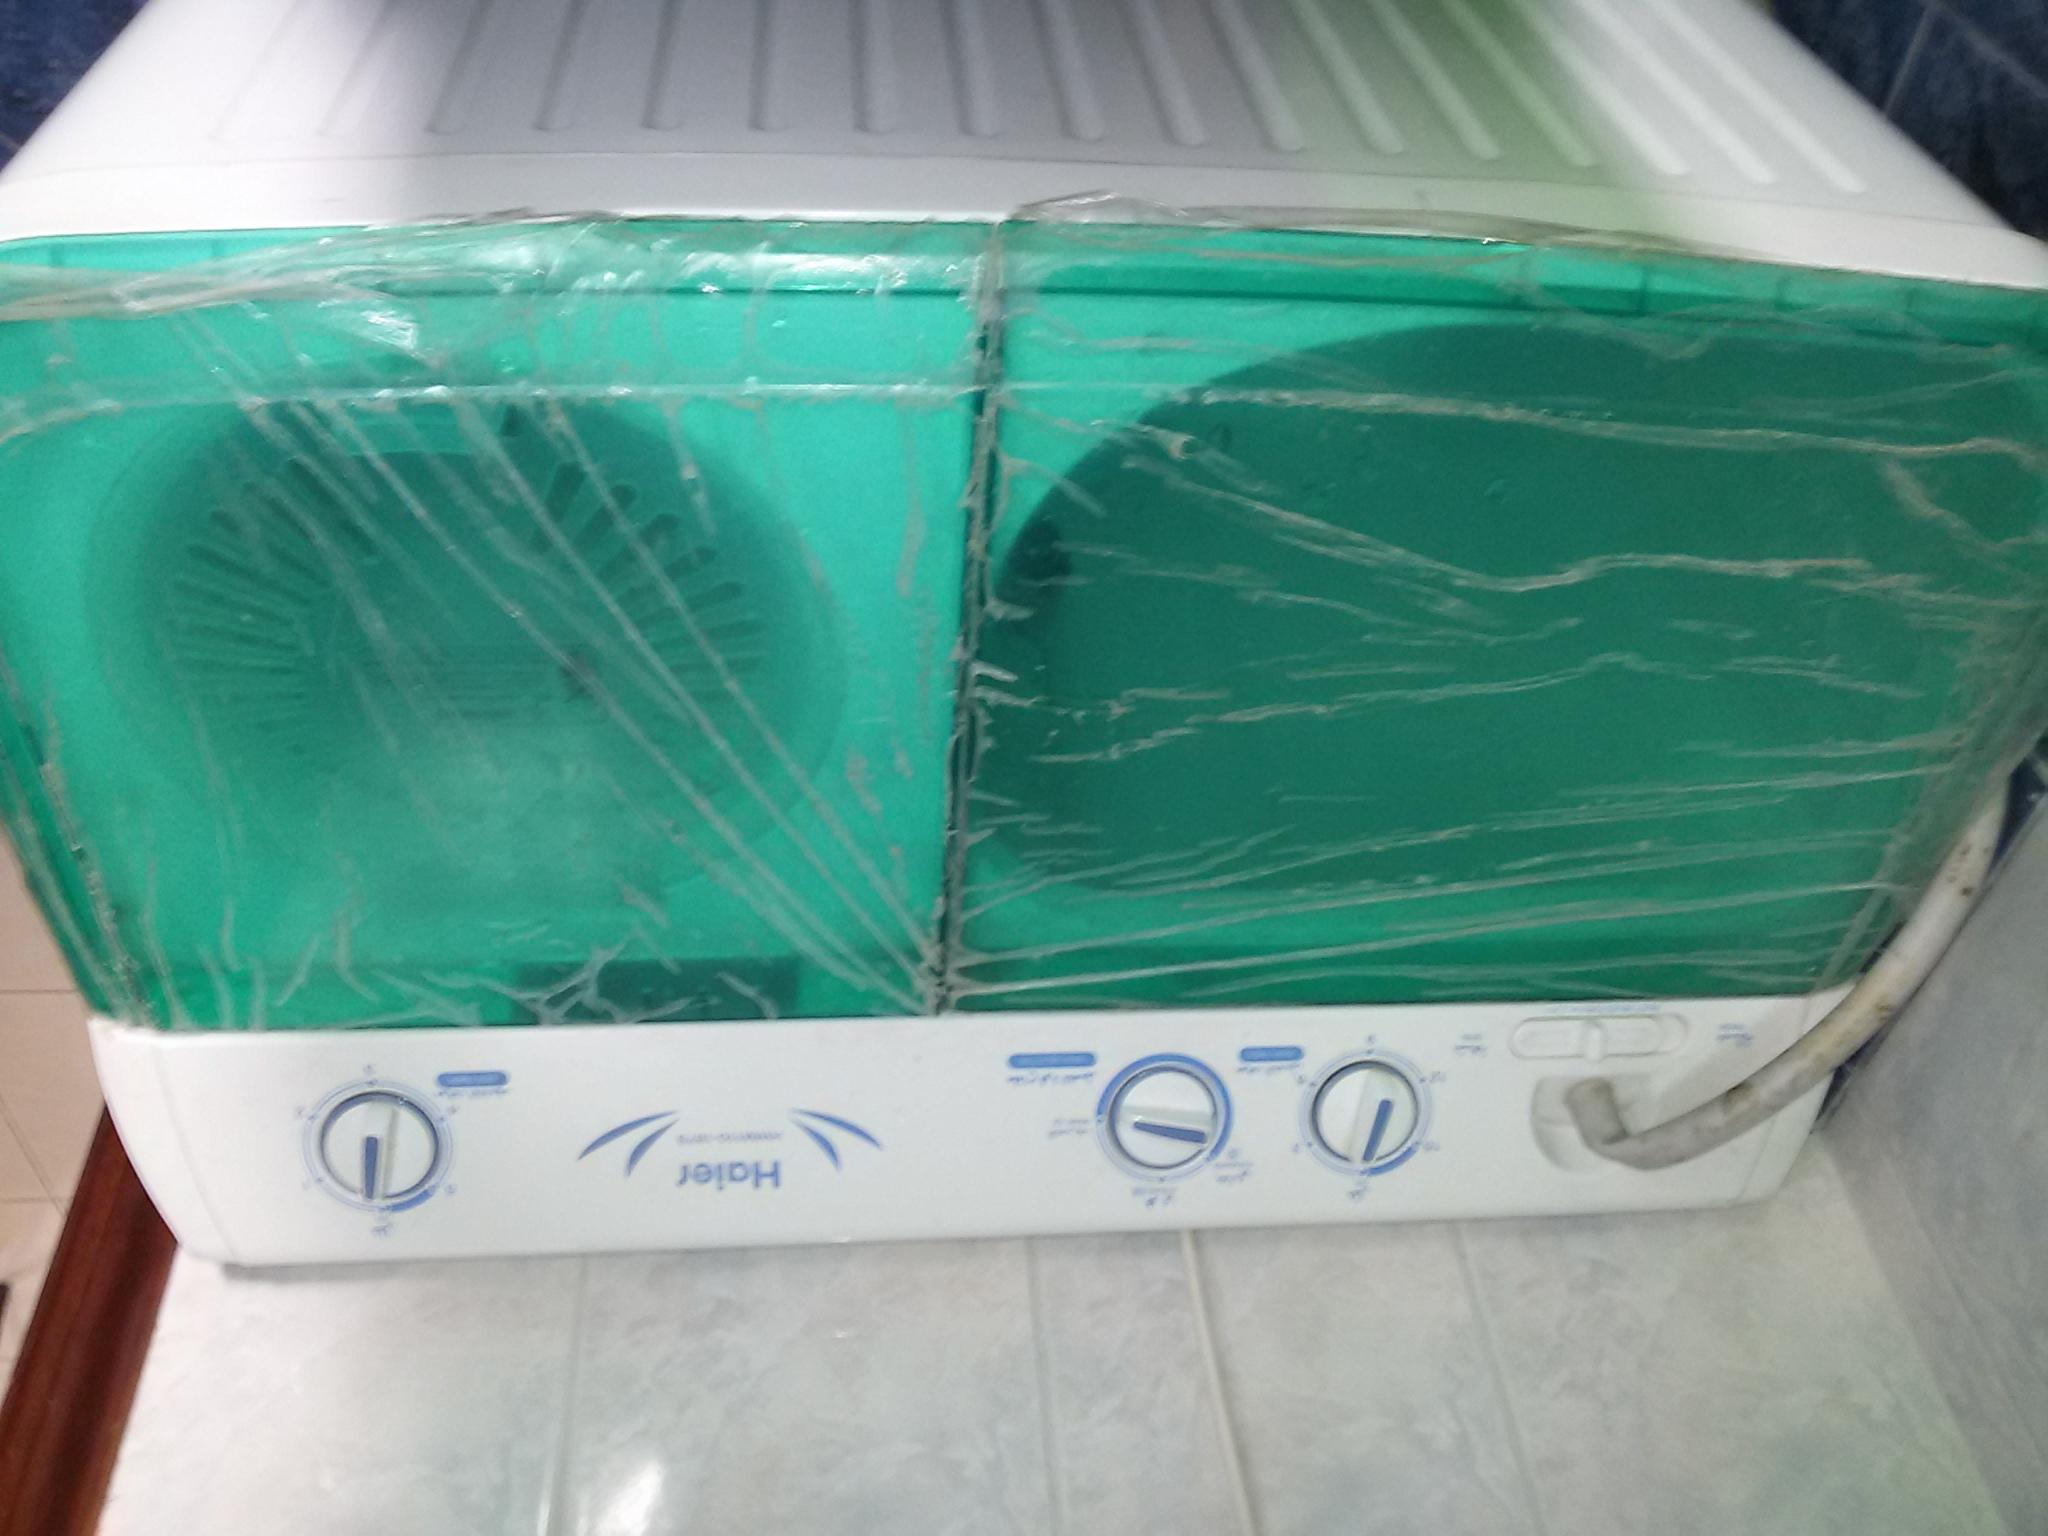 HAIER WASHING MACHINE - MANUAL FOR SALE - CONDITION LIKE NEW